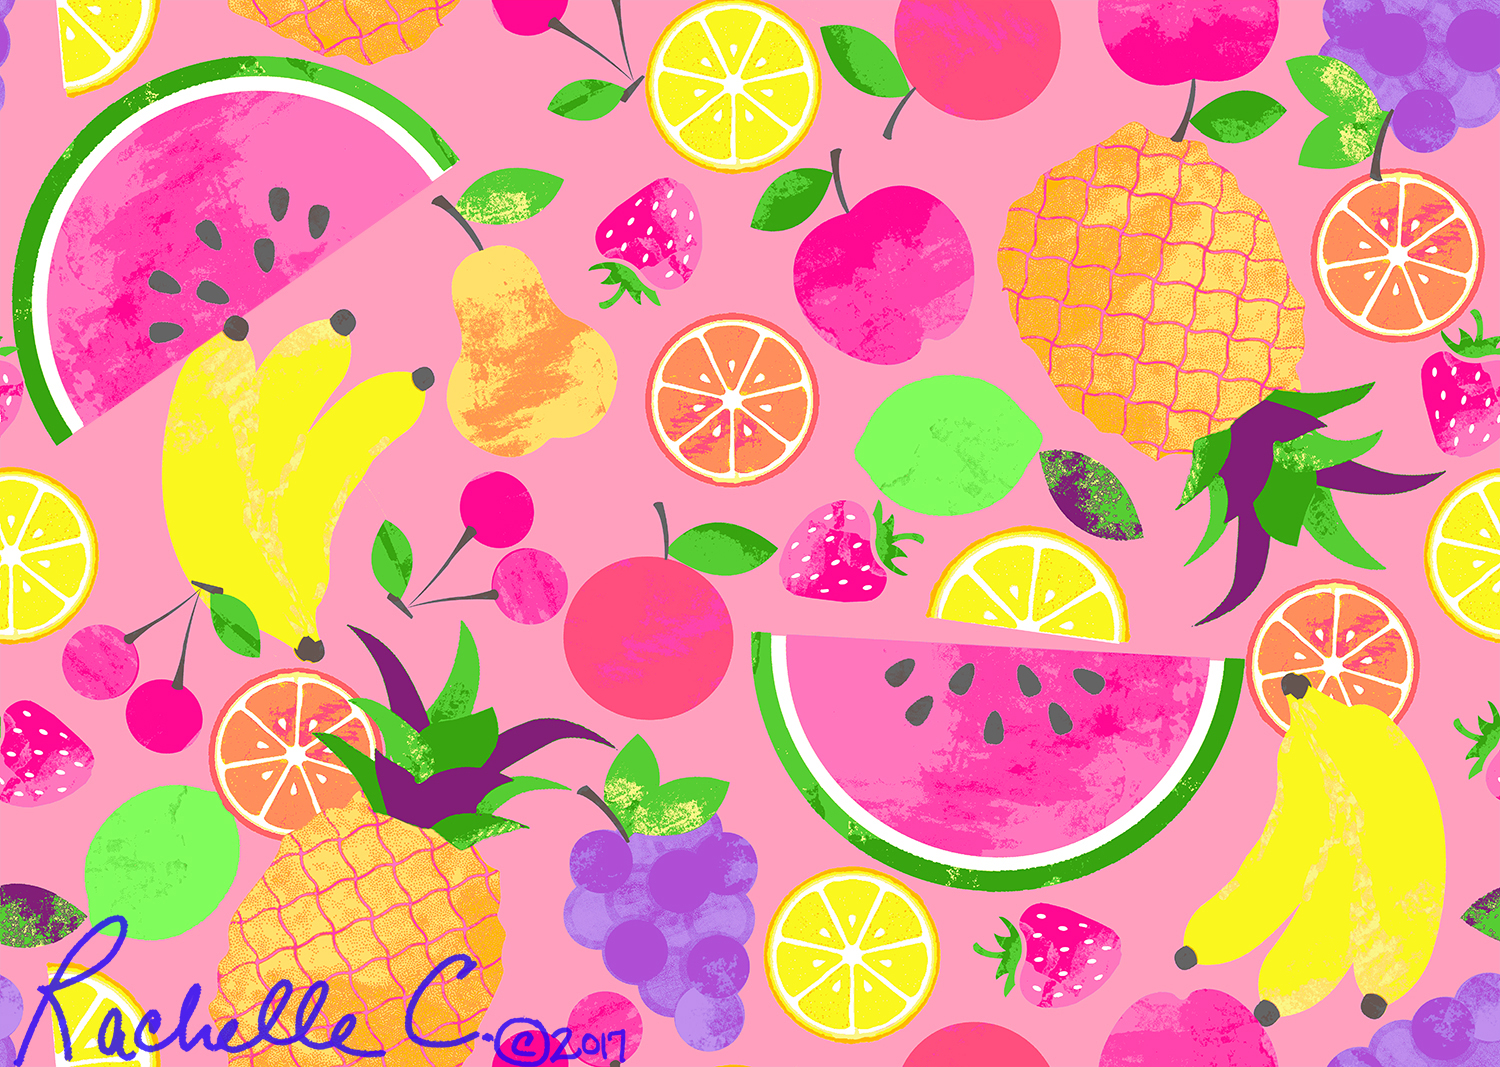 """Fruit Salad"" original print by Rachelle Caliolio Design  copyright 2018. All rights reserved"